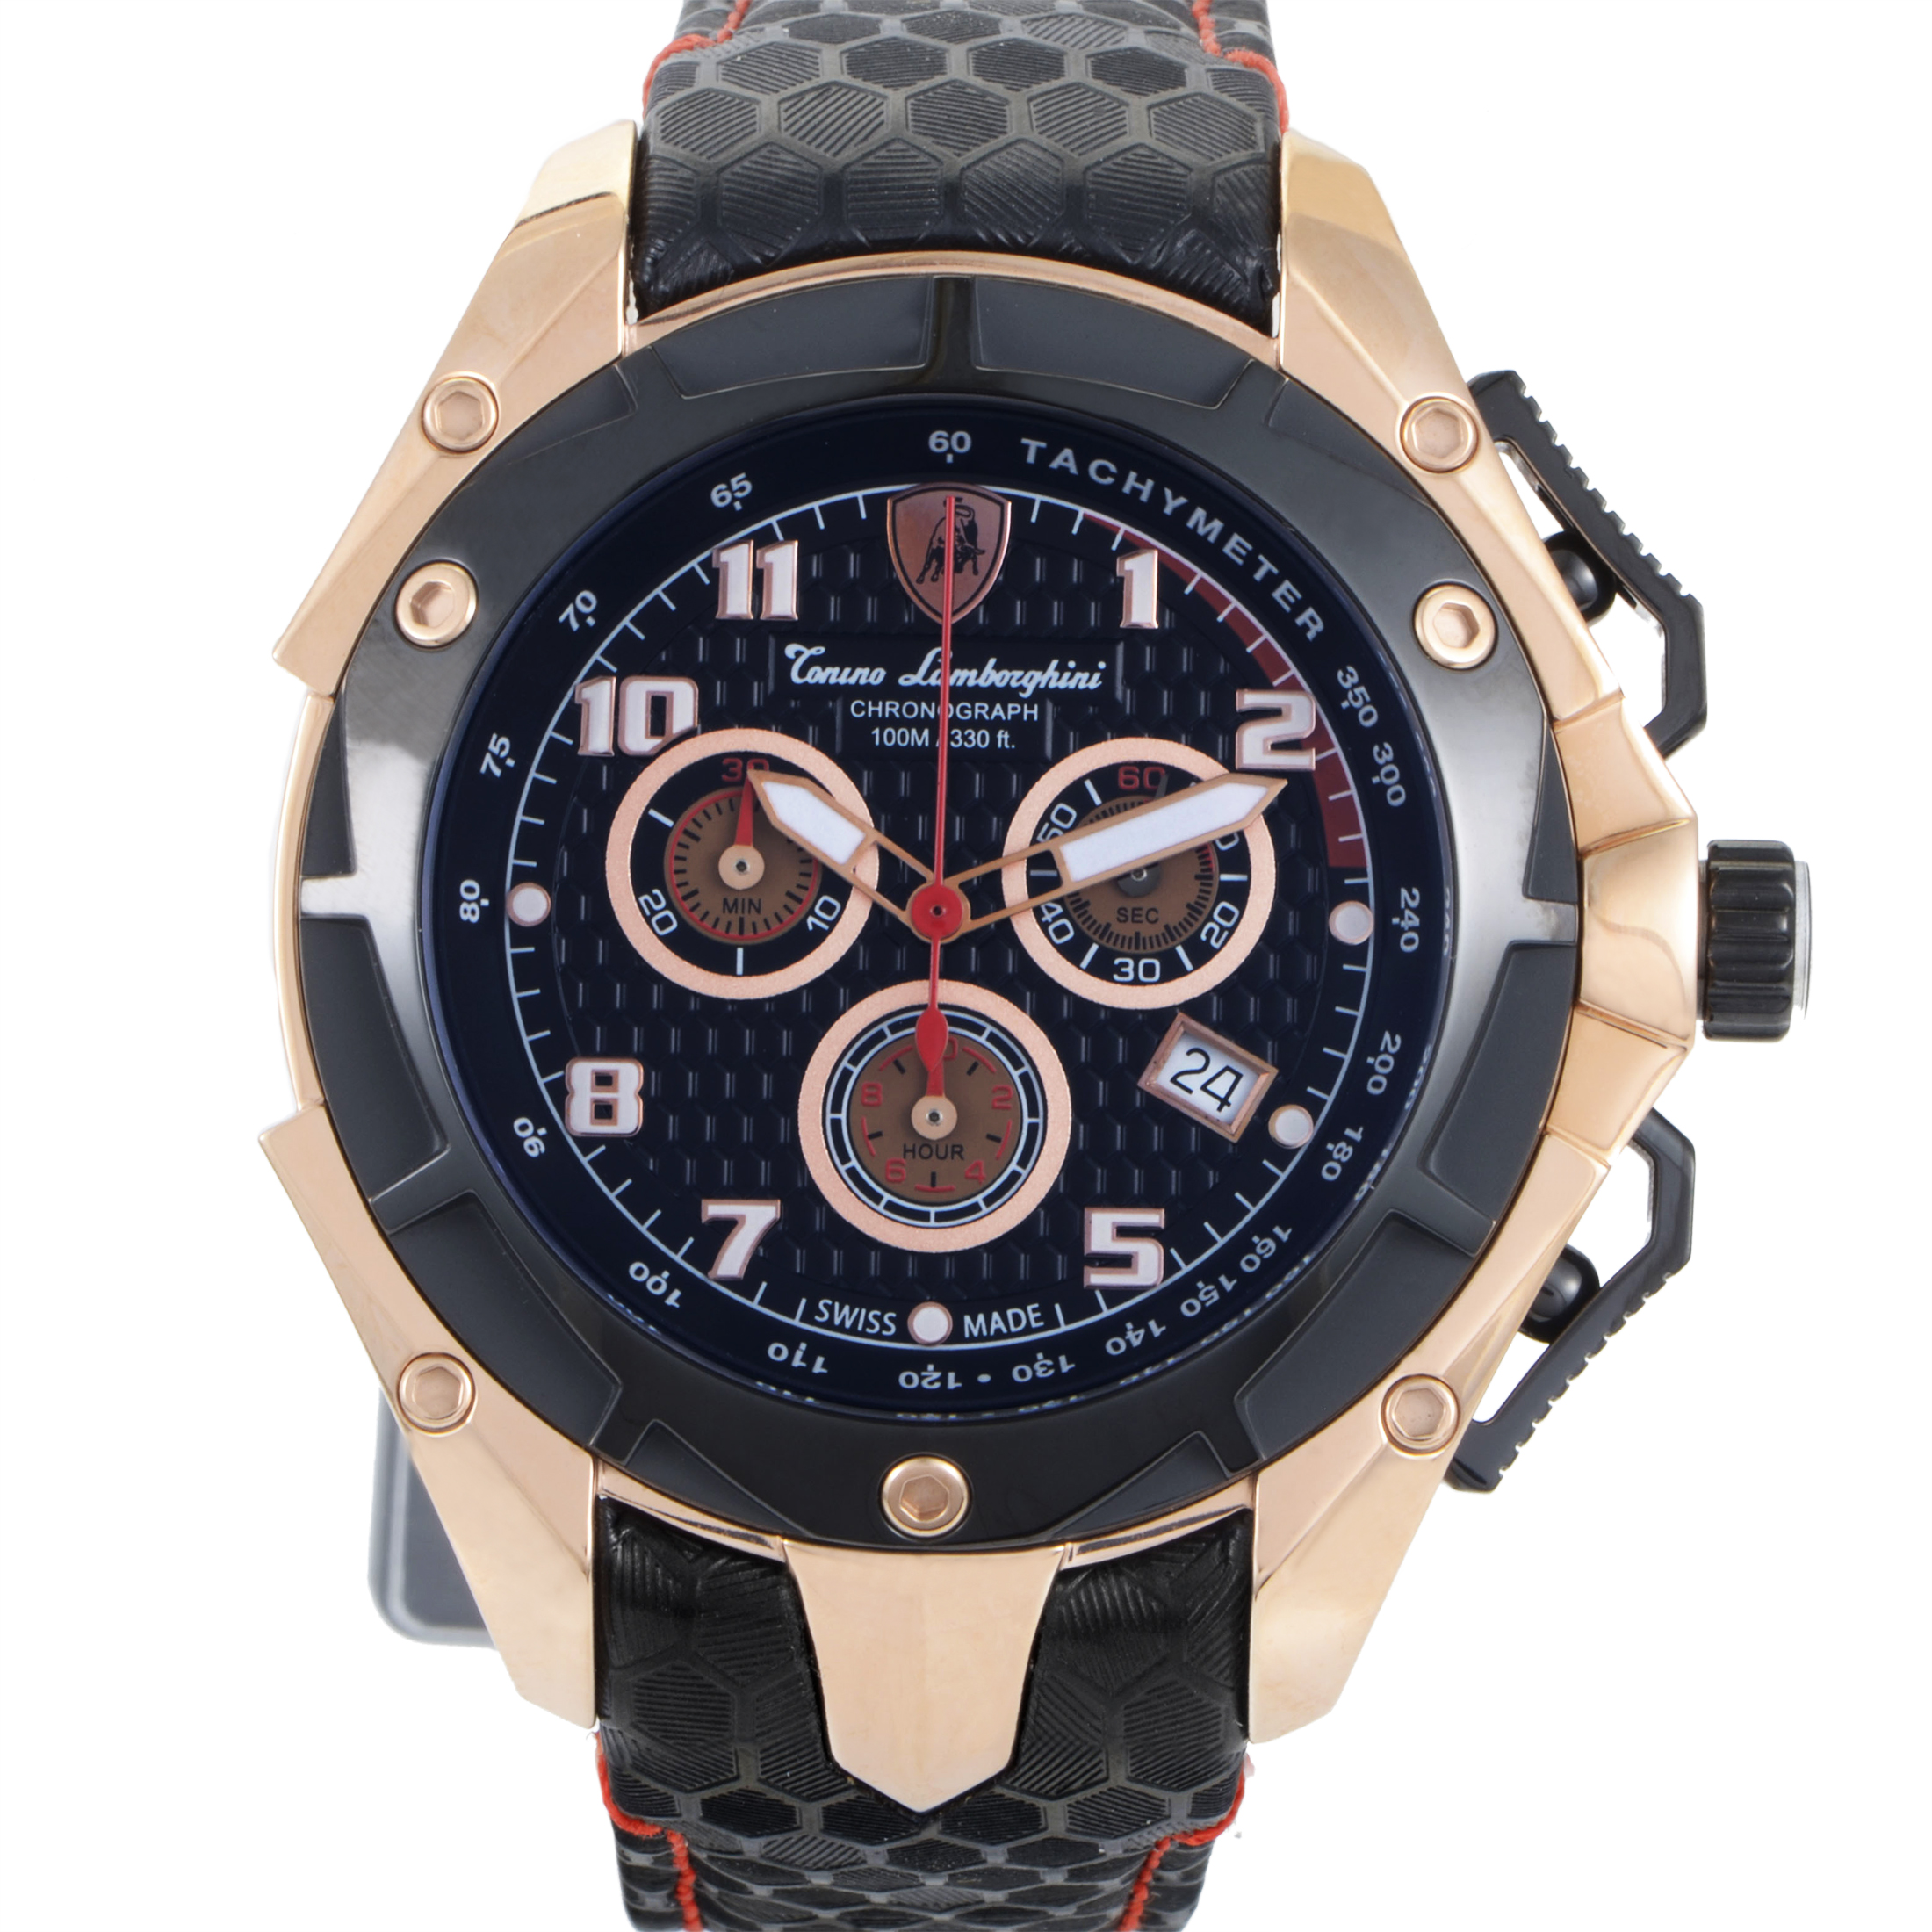 Spyder Men's Quartz Chronograph Watch 3400 3404